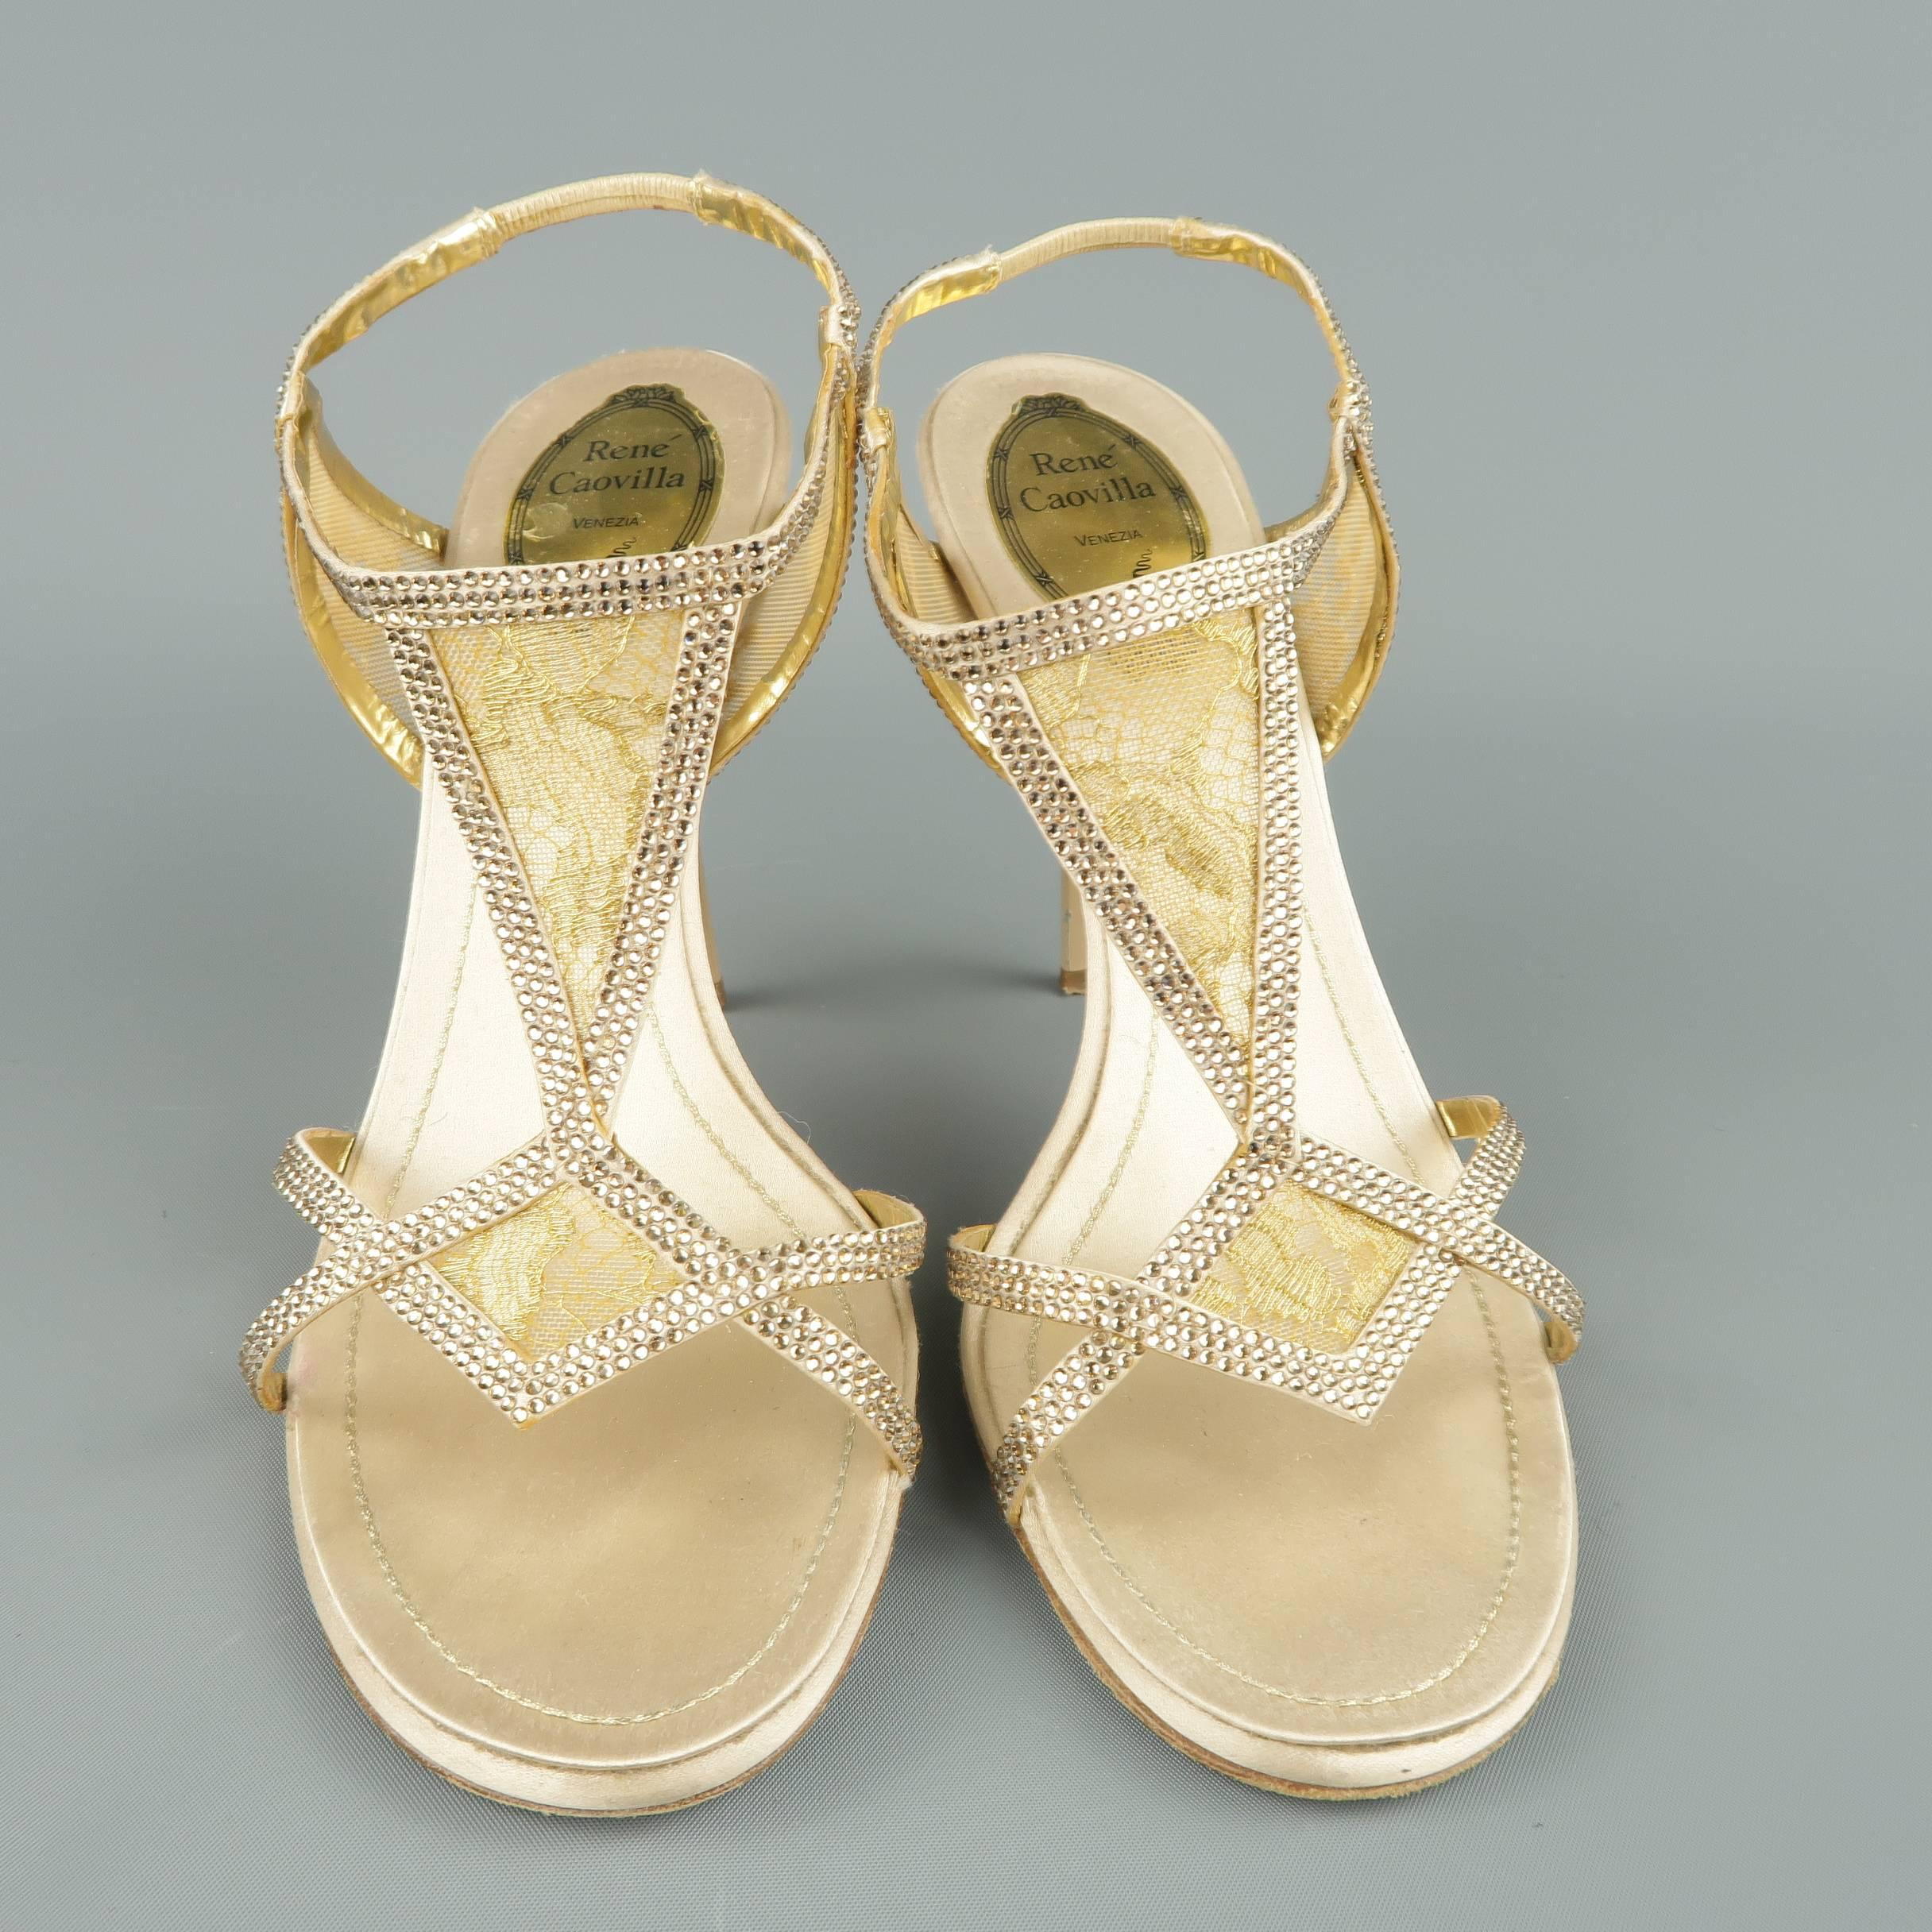 38b4071849c RENE CAOVILLA Size 10 Beige Rhinestone Leather and Gold Lace Sandals For  Sale at 1stdibs